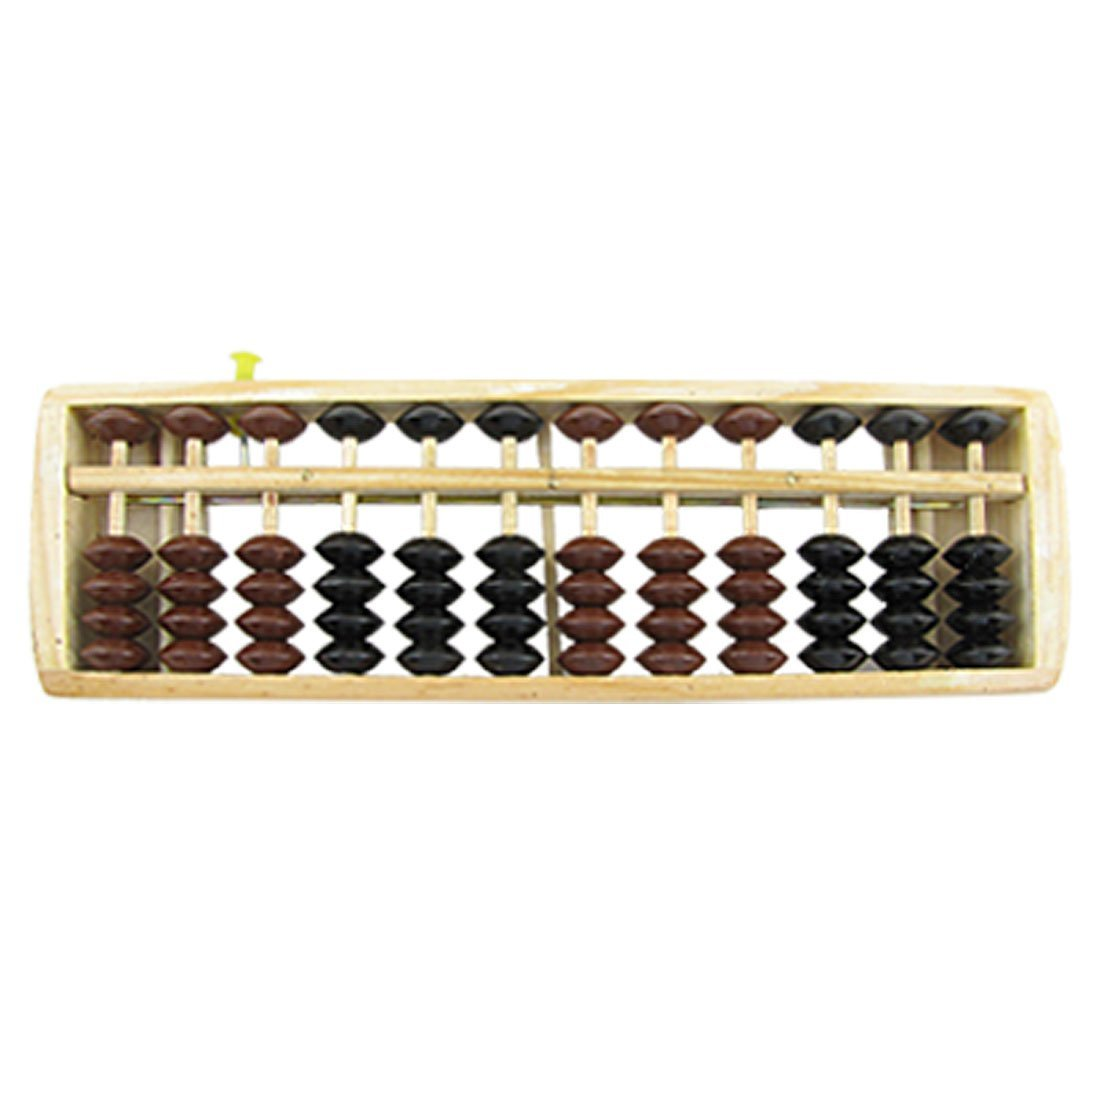 SODIAL(R) School Office Wood 12 Digits Soroban Abacus Calculator